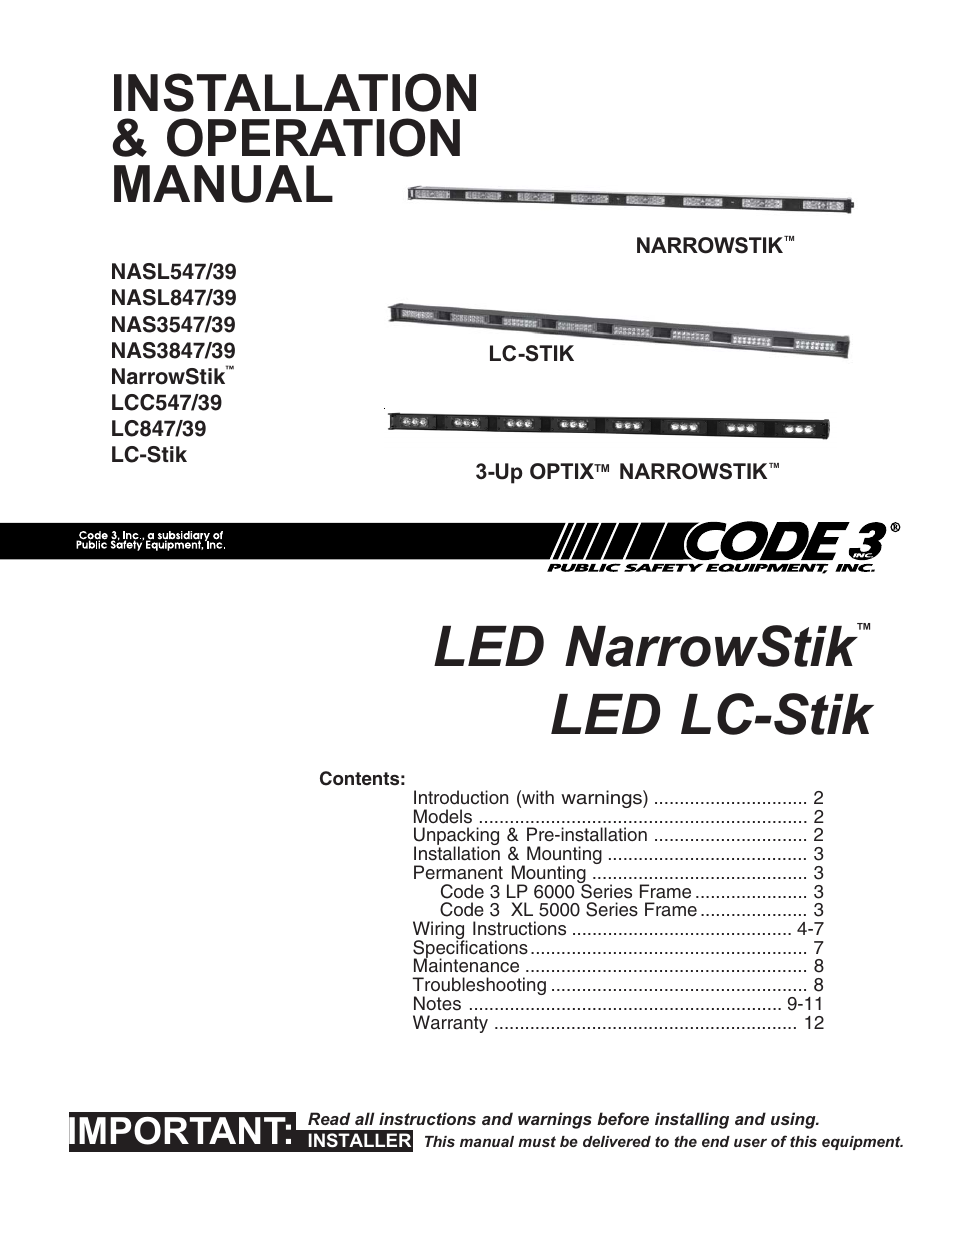 code 3 narrowstik page1 code 3 narrowstik wiring electrical wiring color code standards code 3 arrowstick wiring diagram at virtualis.co